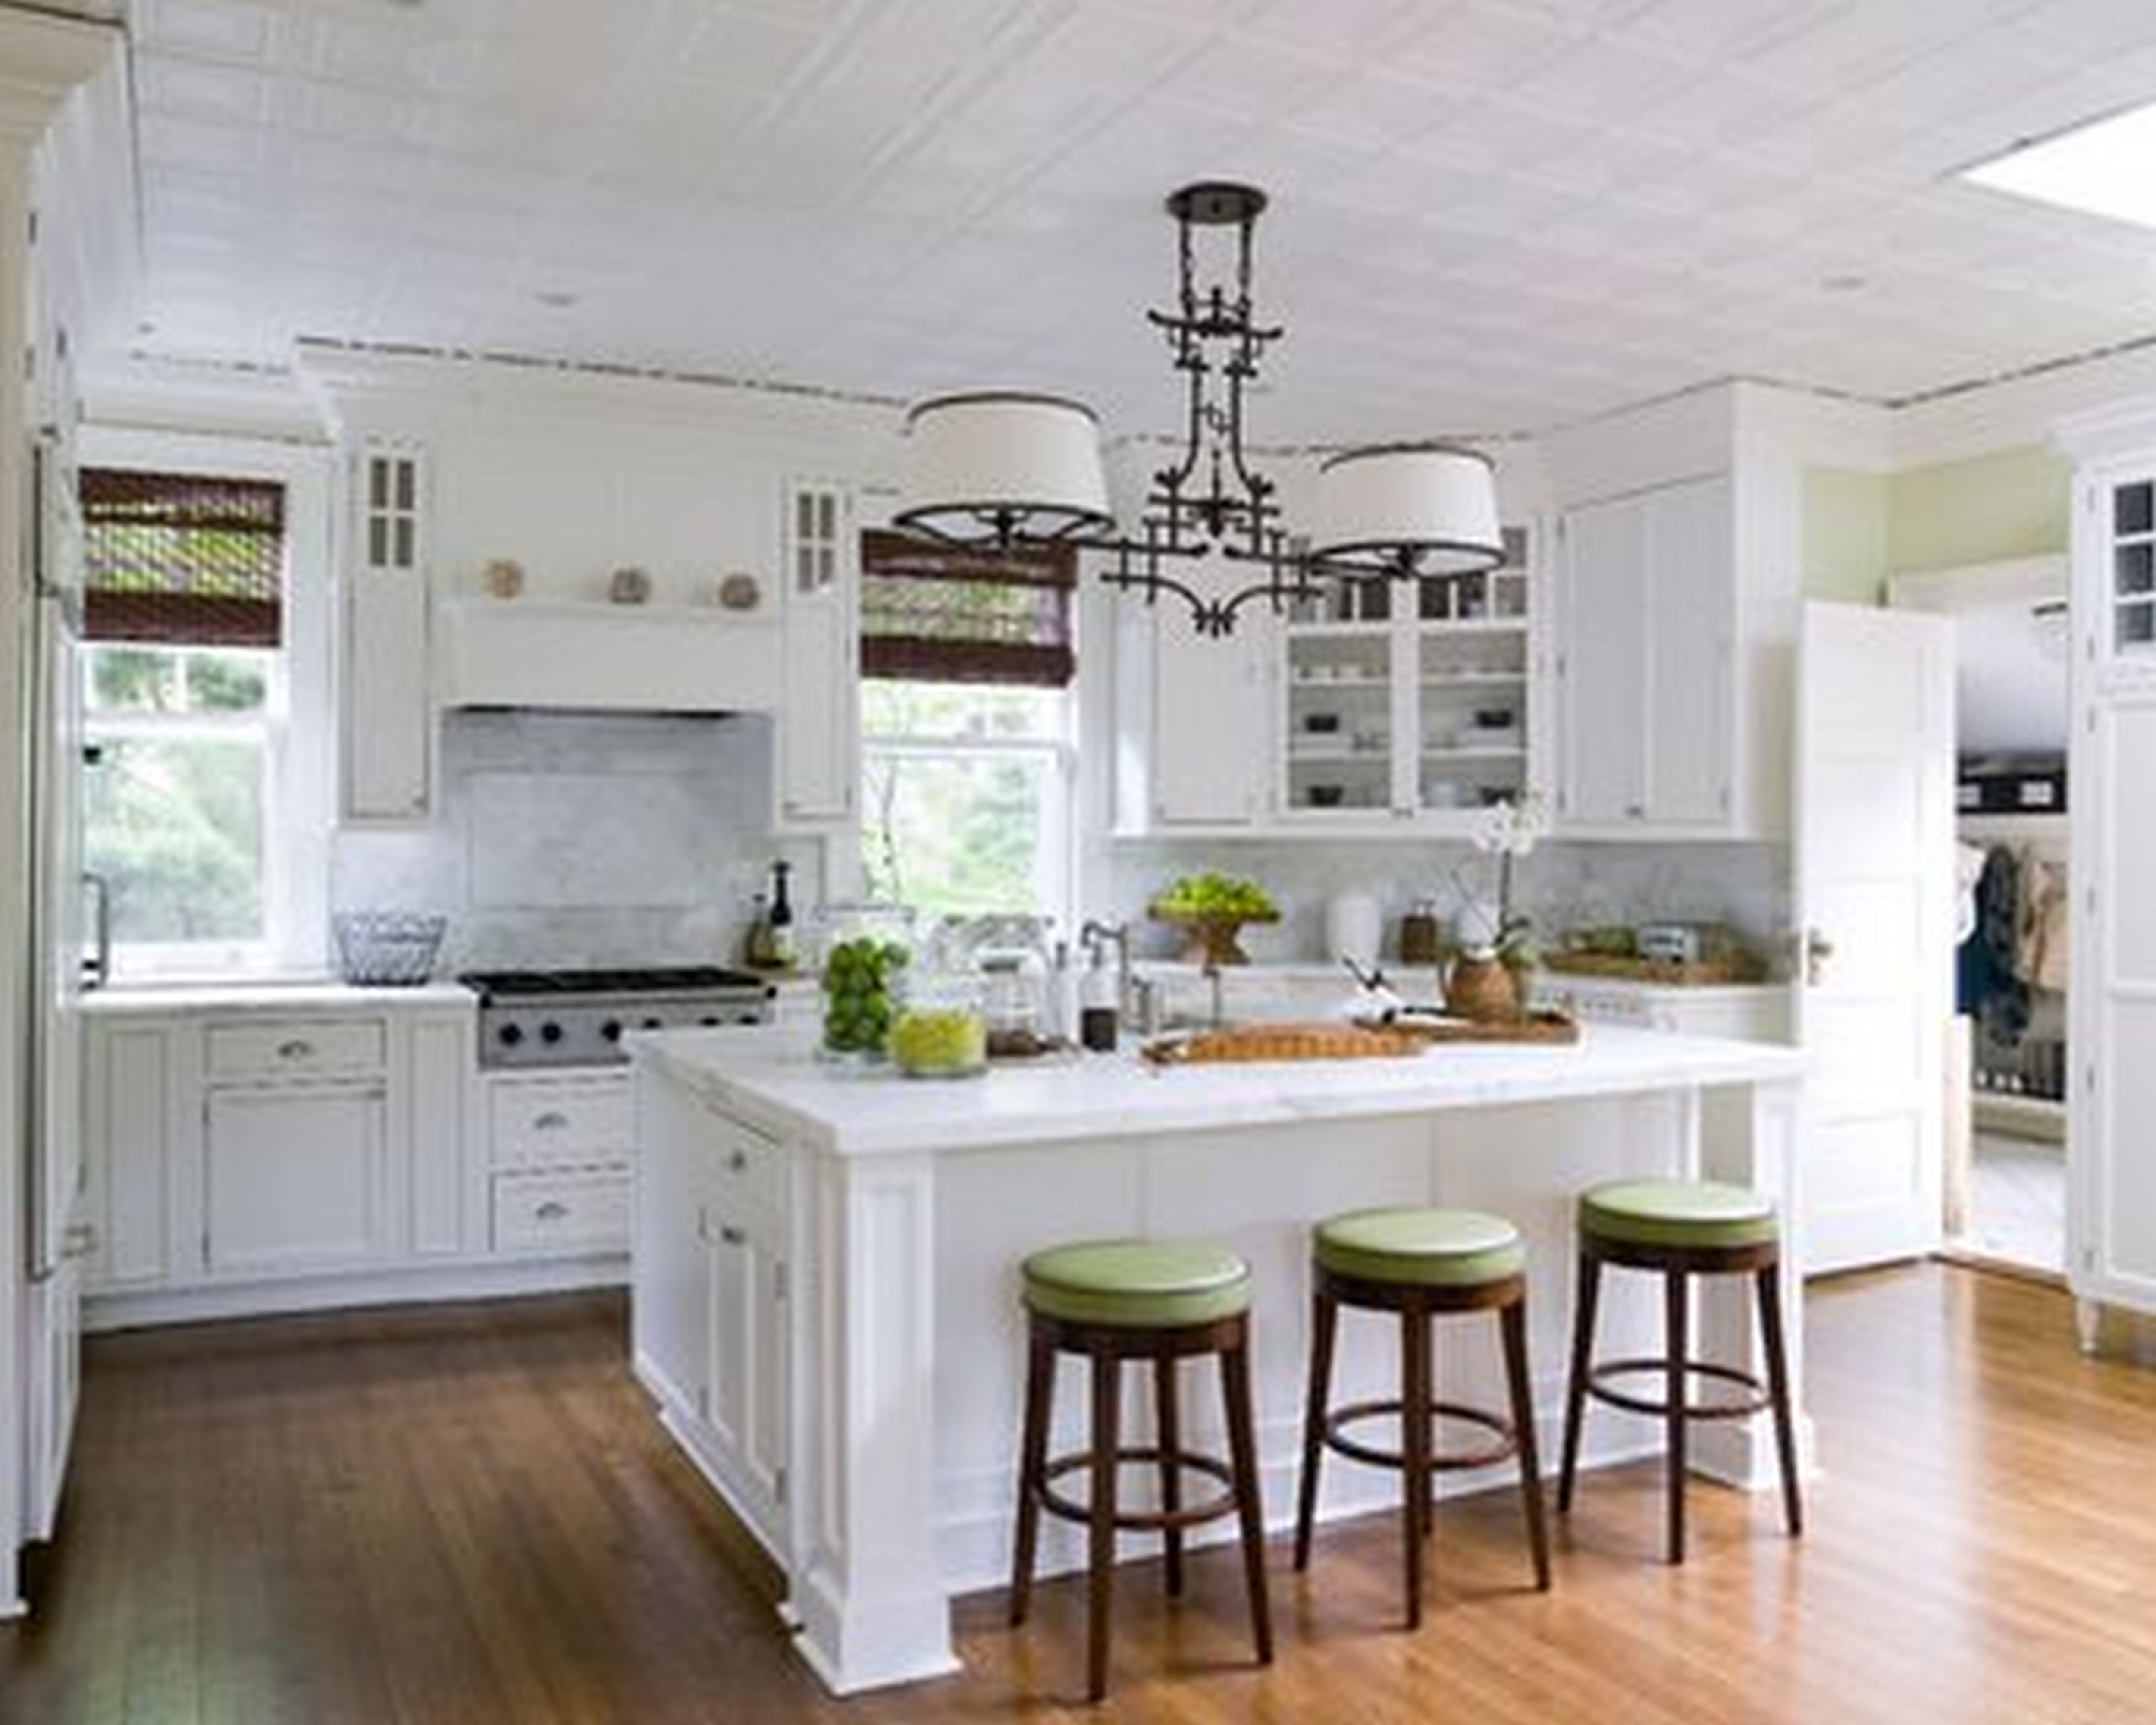 Charmant Modern Chic Kitchen Designs, Light Wood Floor   Google Search